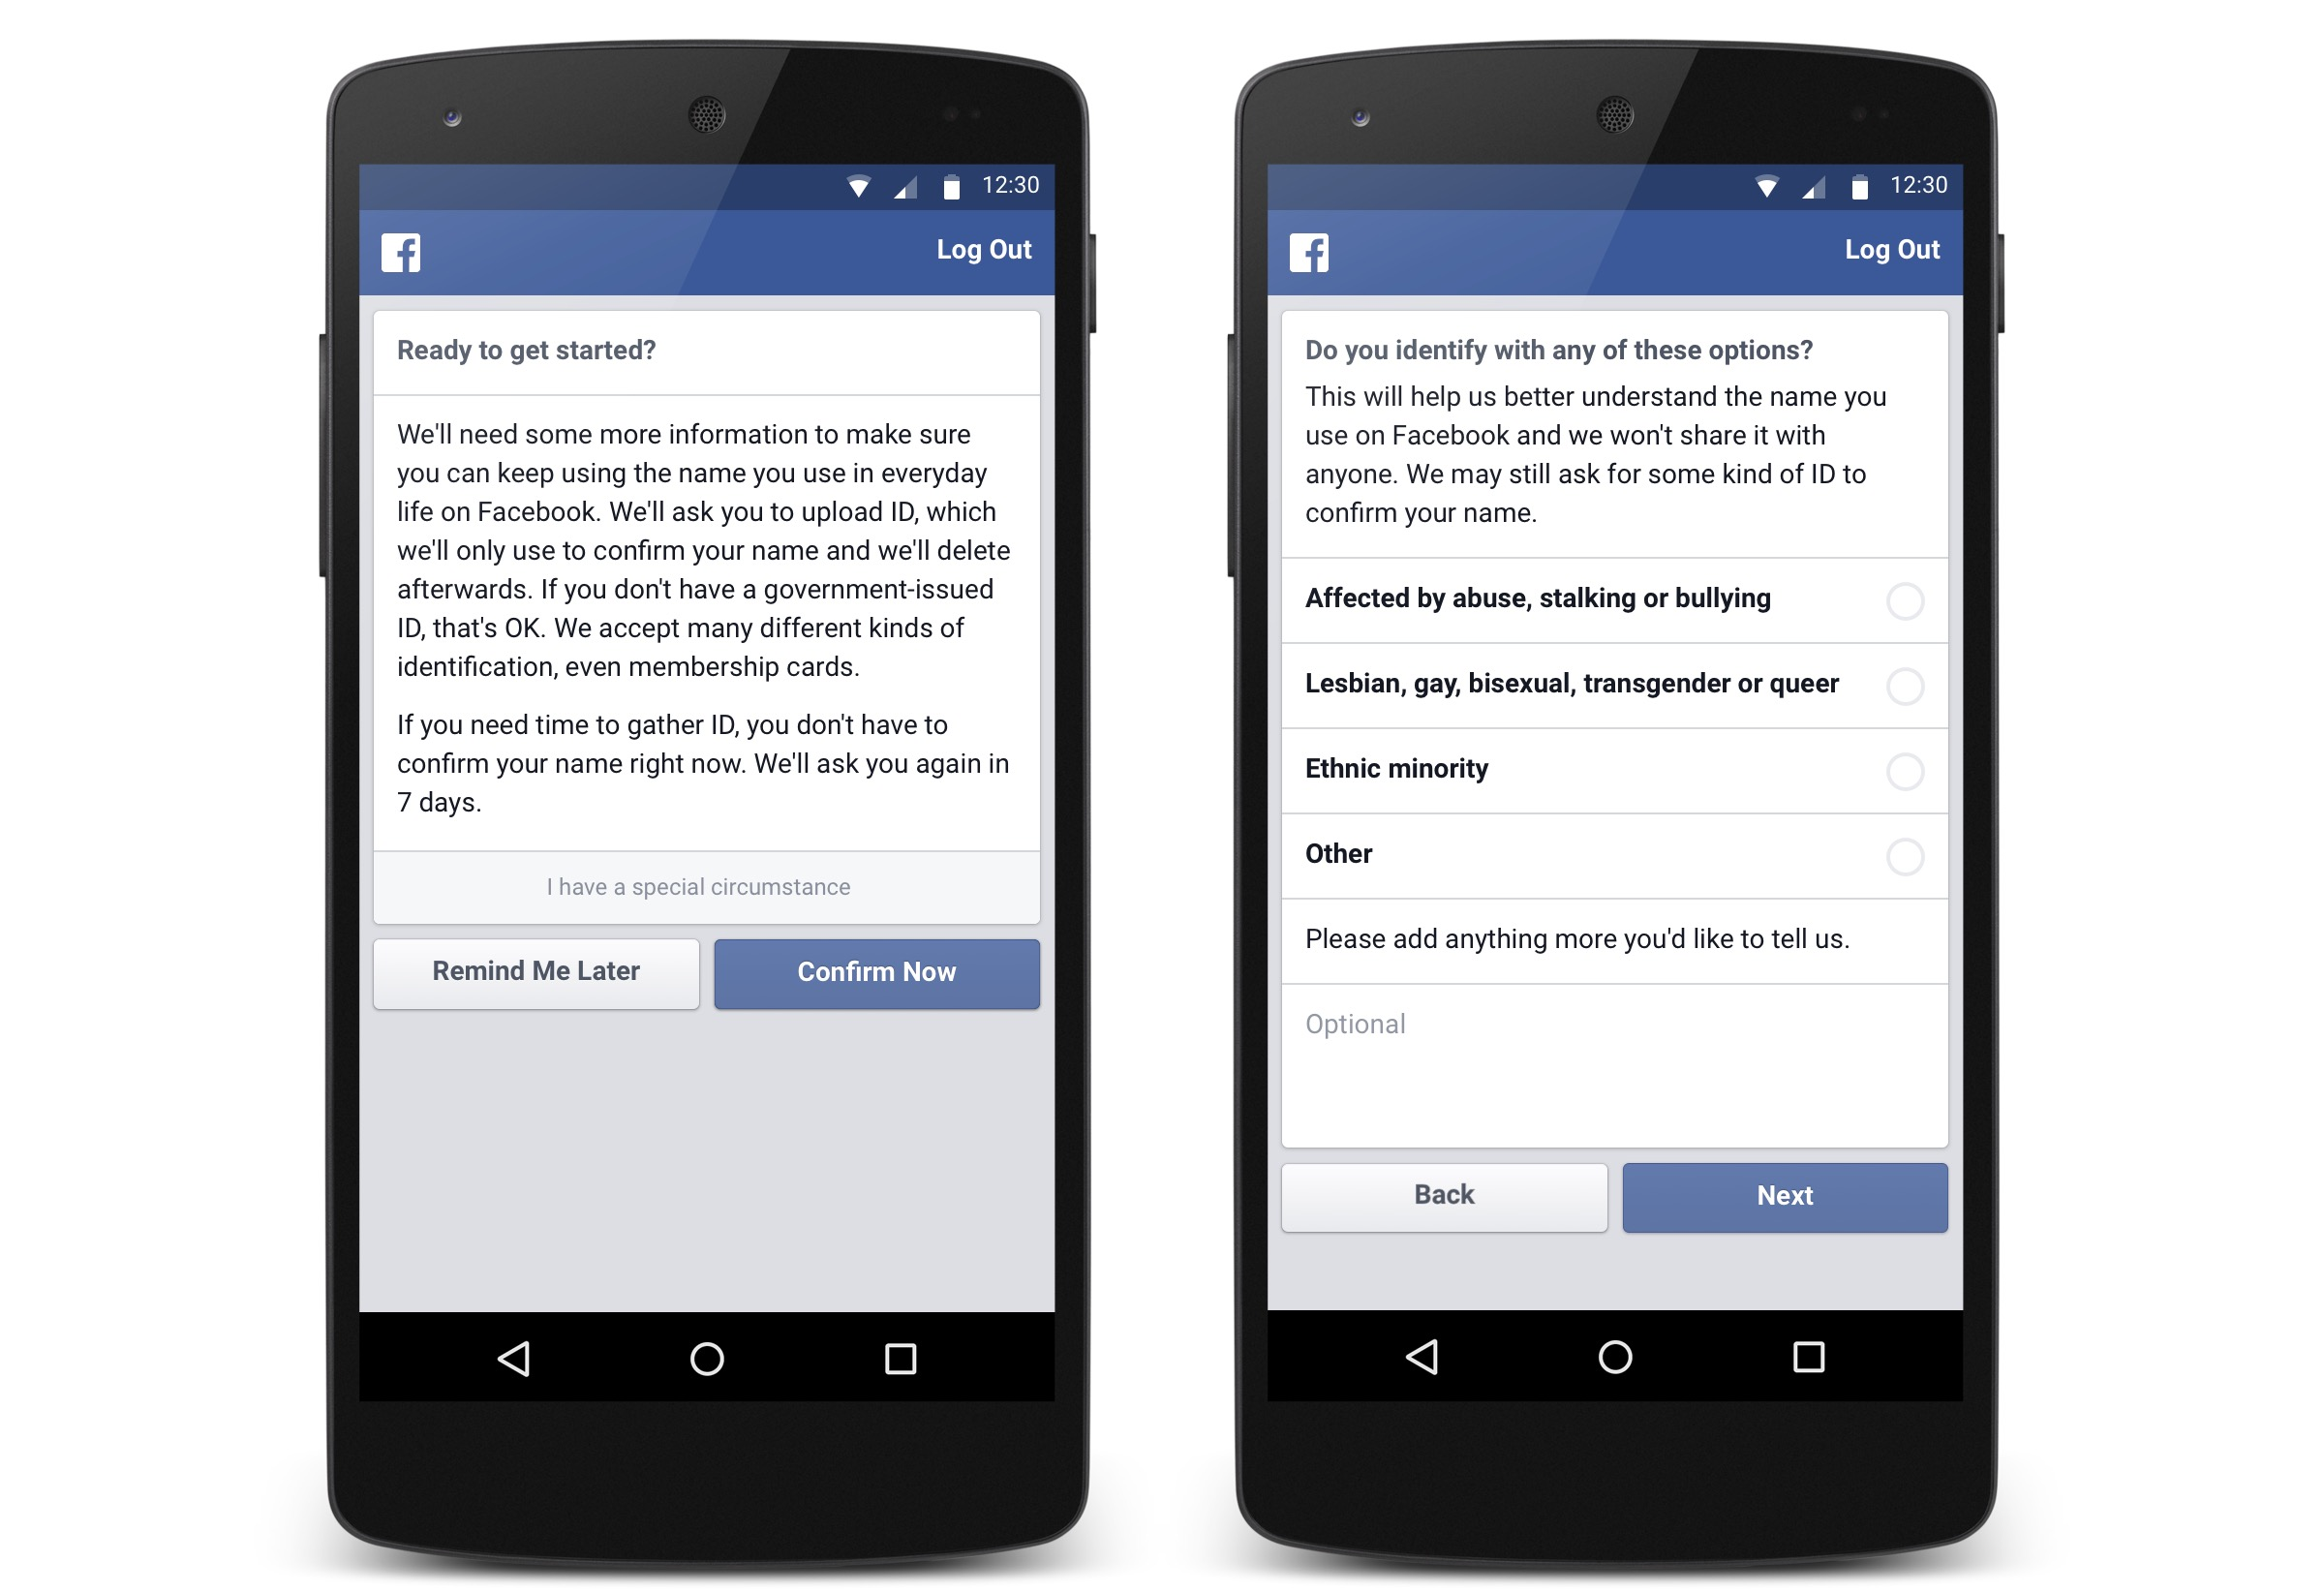 Facebook Real Name Policy Appeal